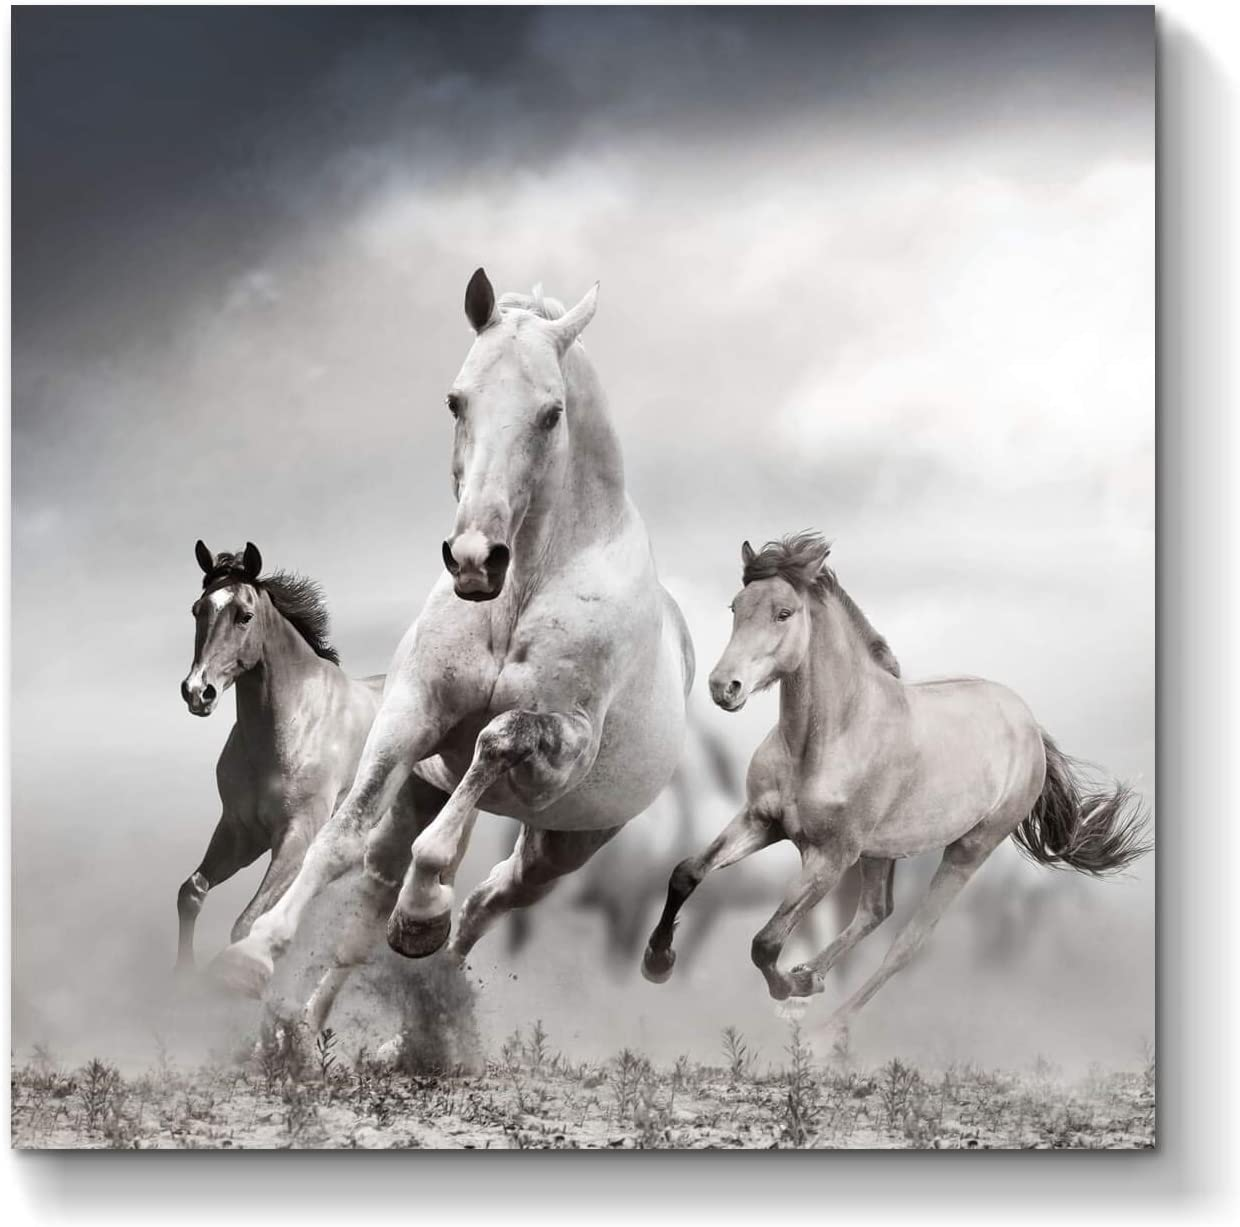 Running Horses Canvas Wall Art: Wild Animals Artwork Print Painting on Canvas for Wall ( 24'' x 24'' x 1 Panel )